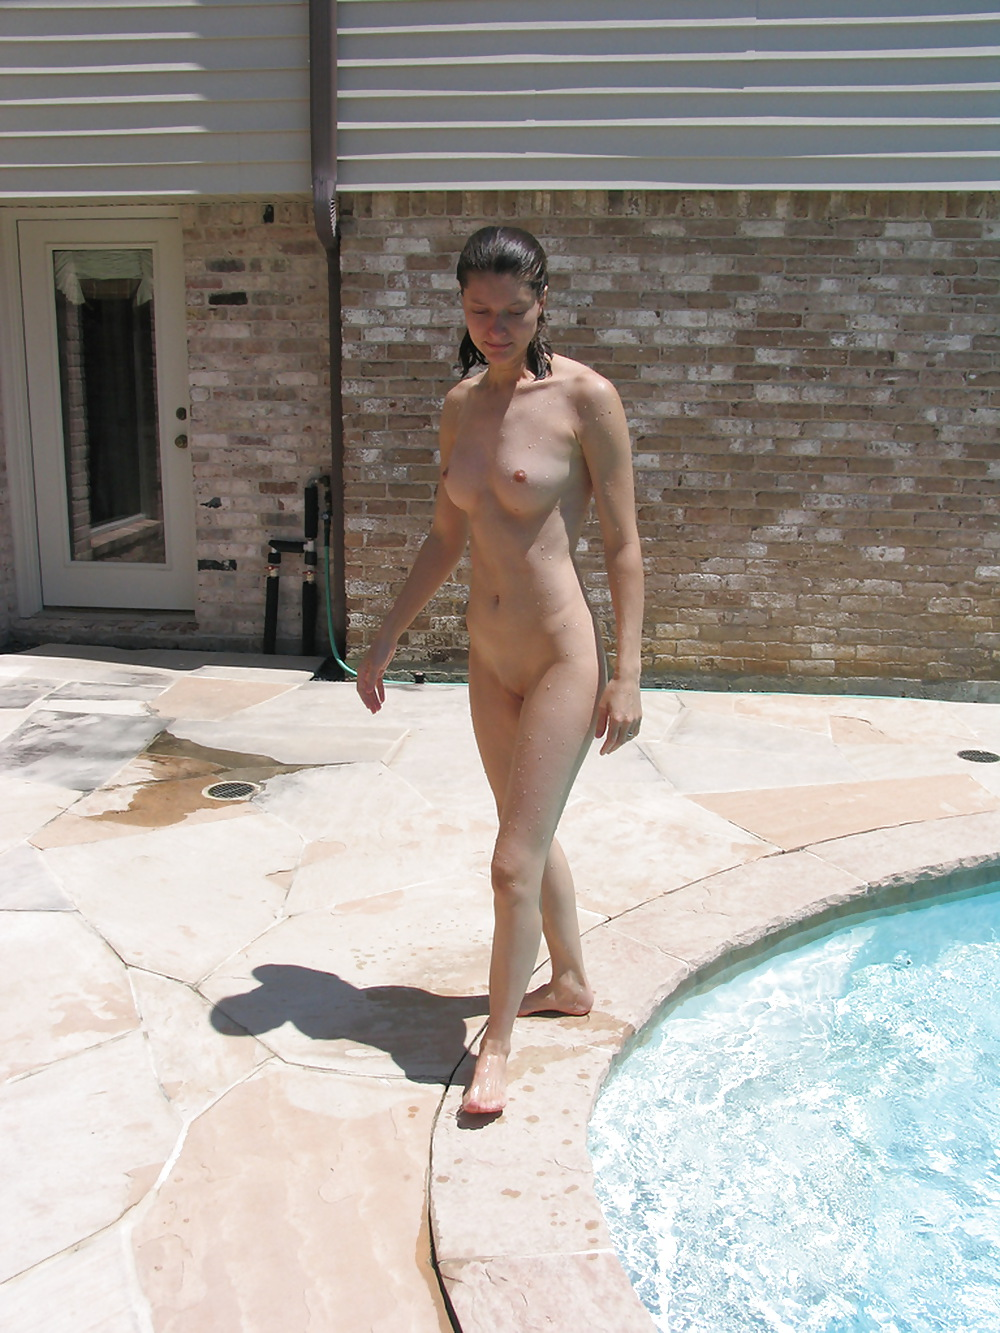 Backyard nudist